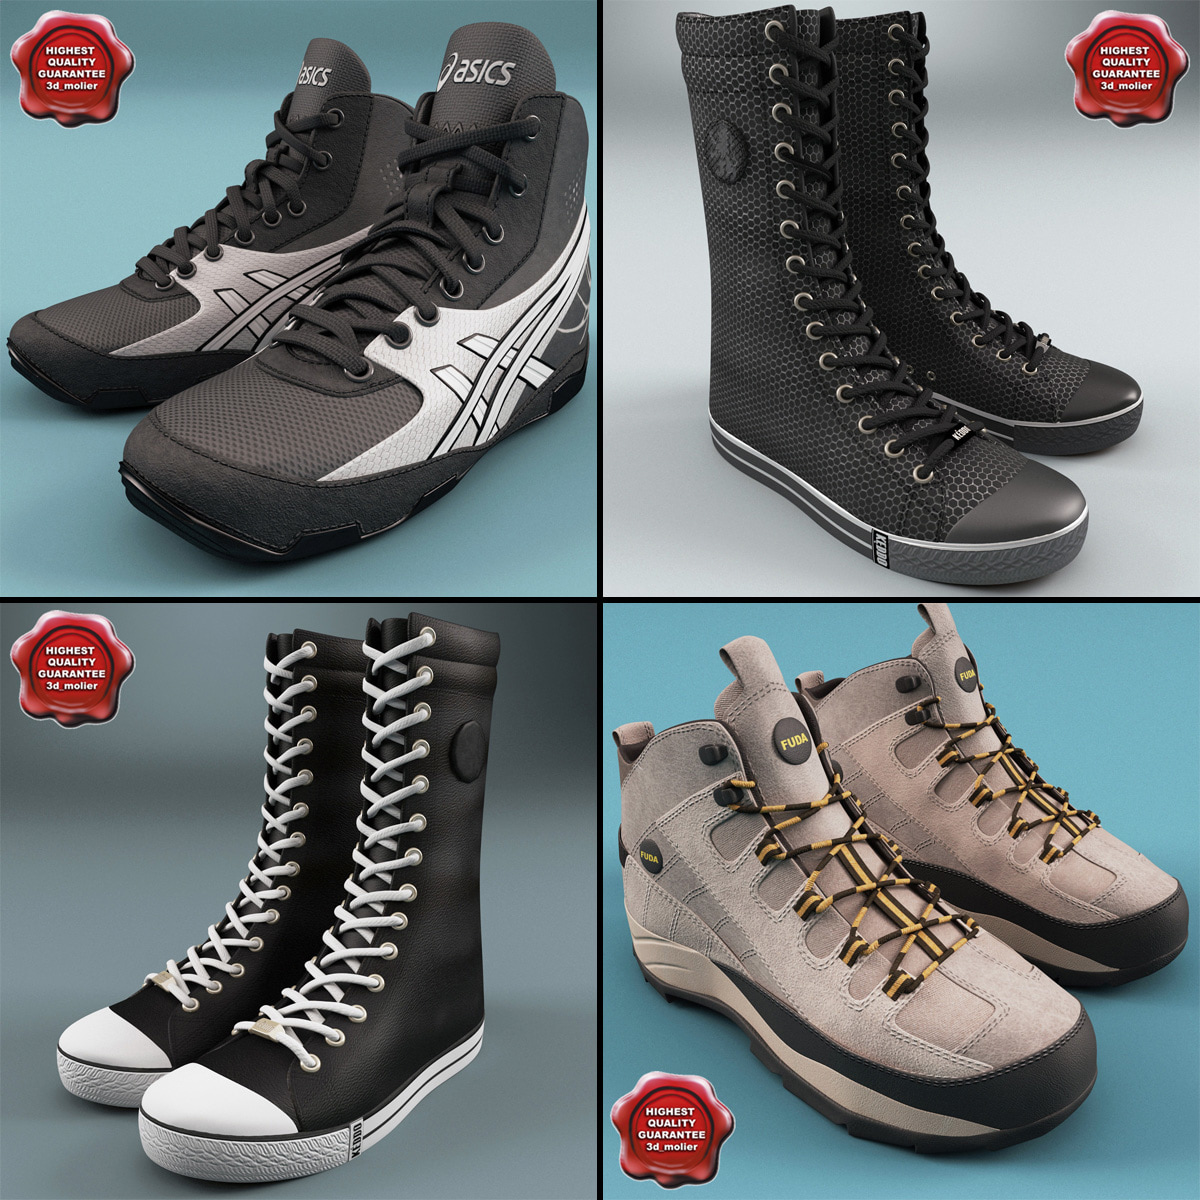 Winter_Sport_Shoes_Collection_00.jpg